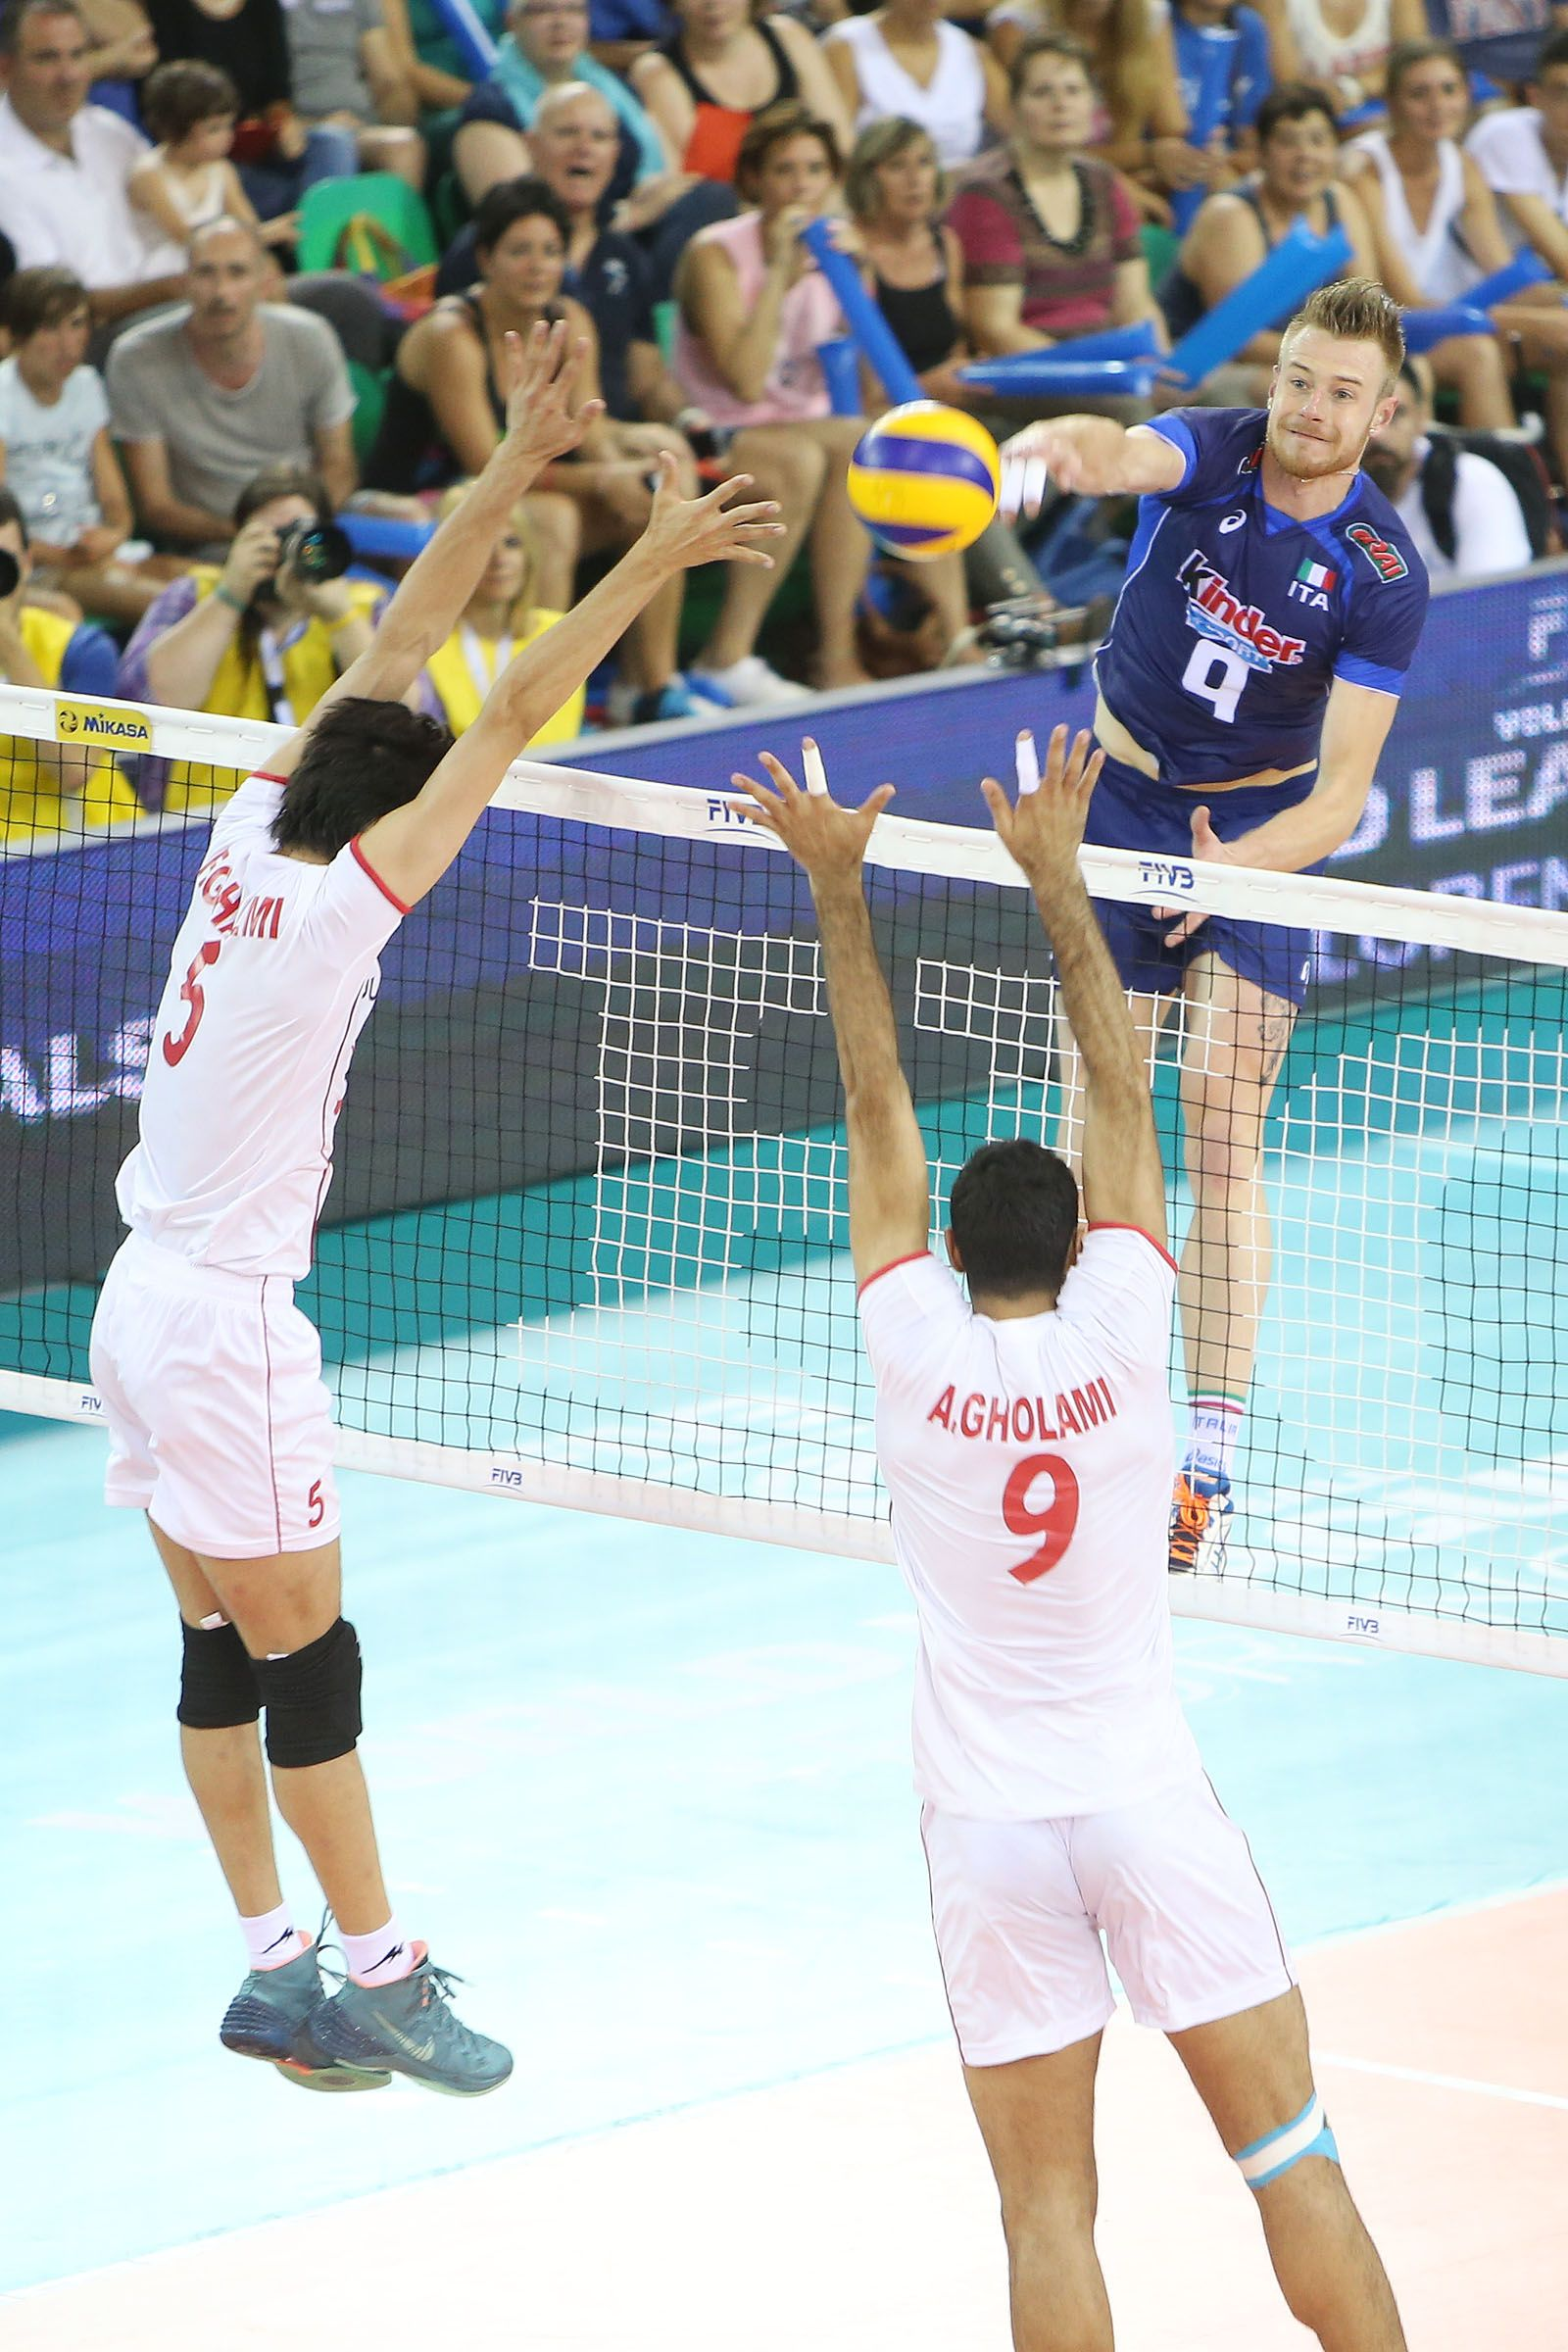 Ivan Zaytsev Right Of Italy Spikes Against Ghaemi And Gholami Iri Volleyball Wallpaper Volleyball Volley